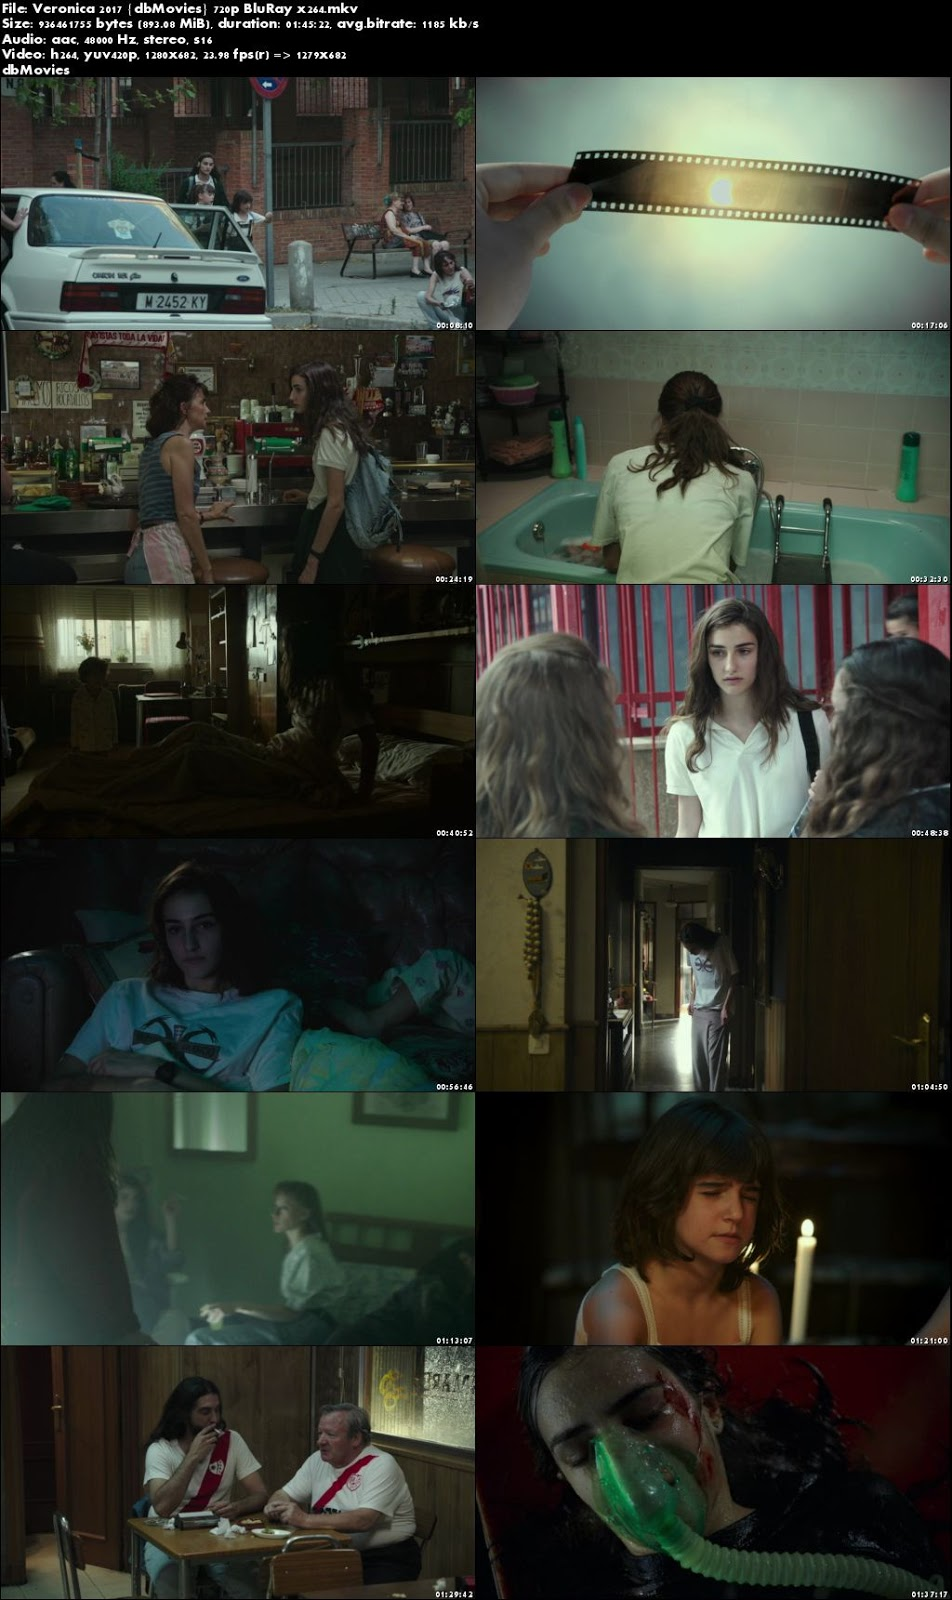 Screen Shots Veronica 2017 Full Movie Download in English HD 720p